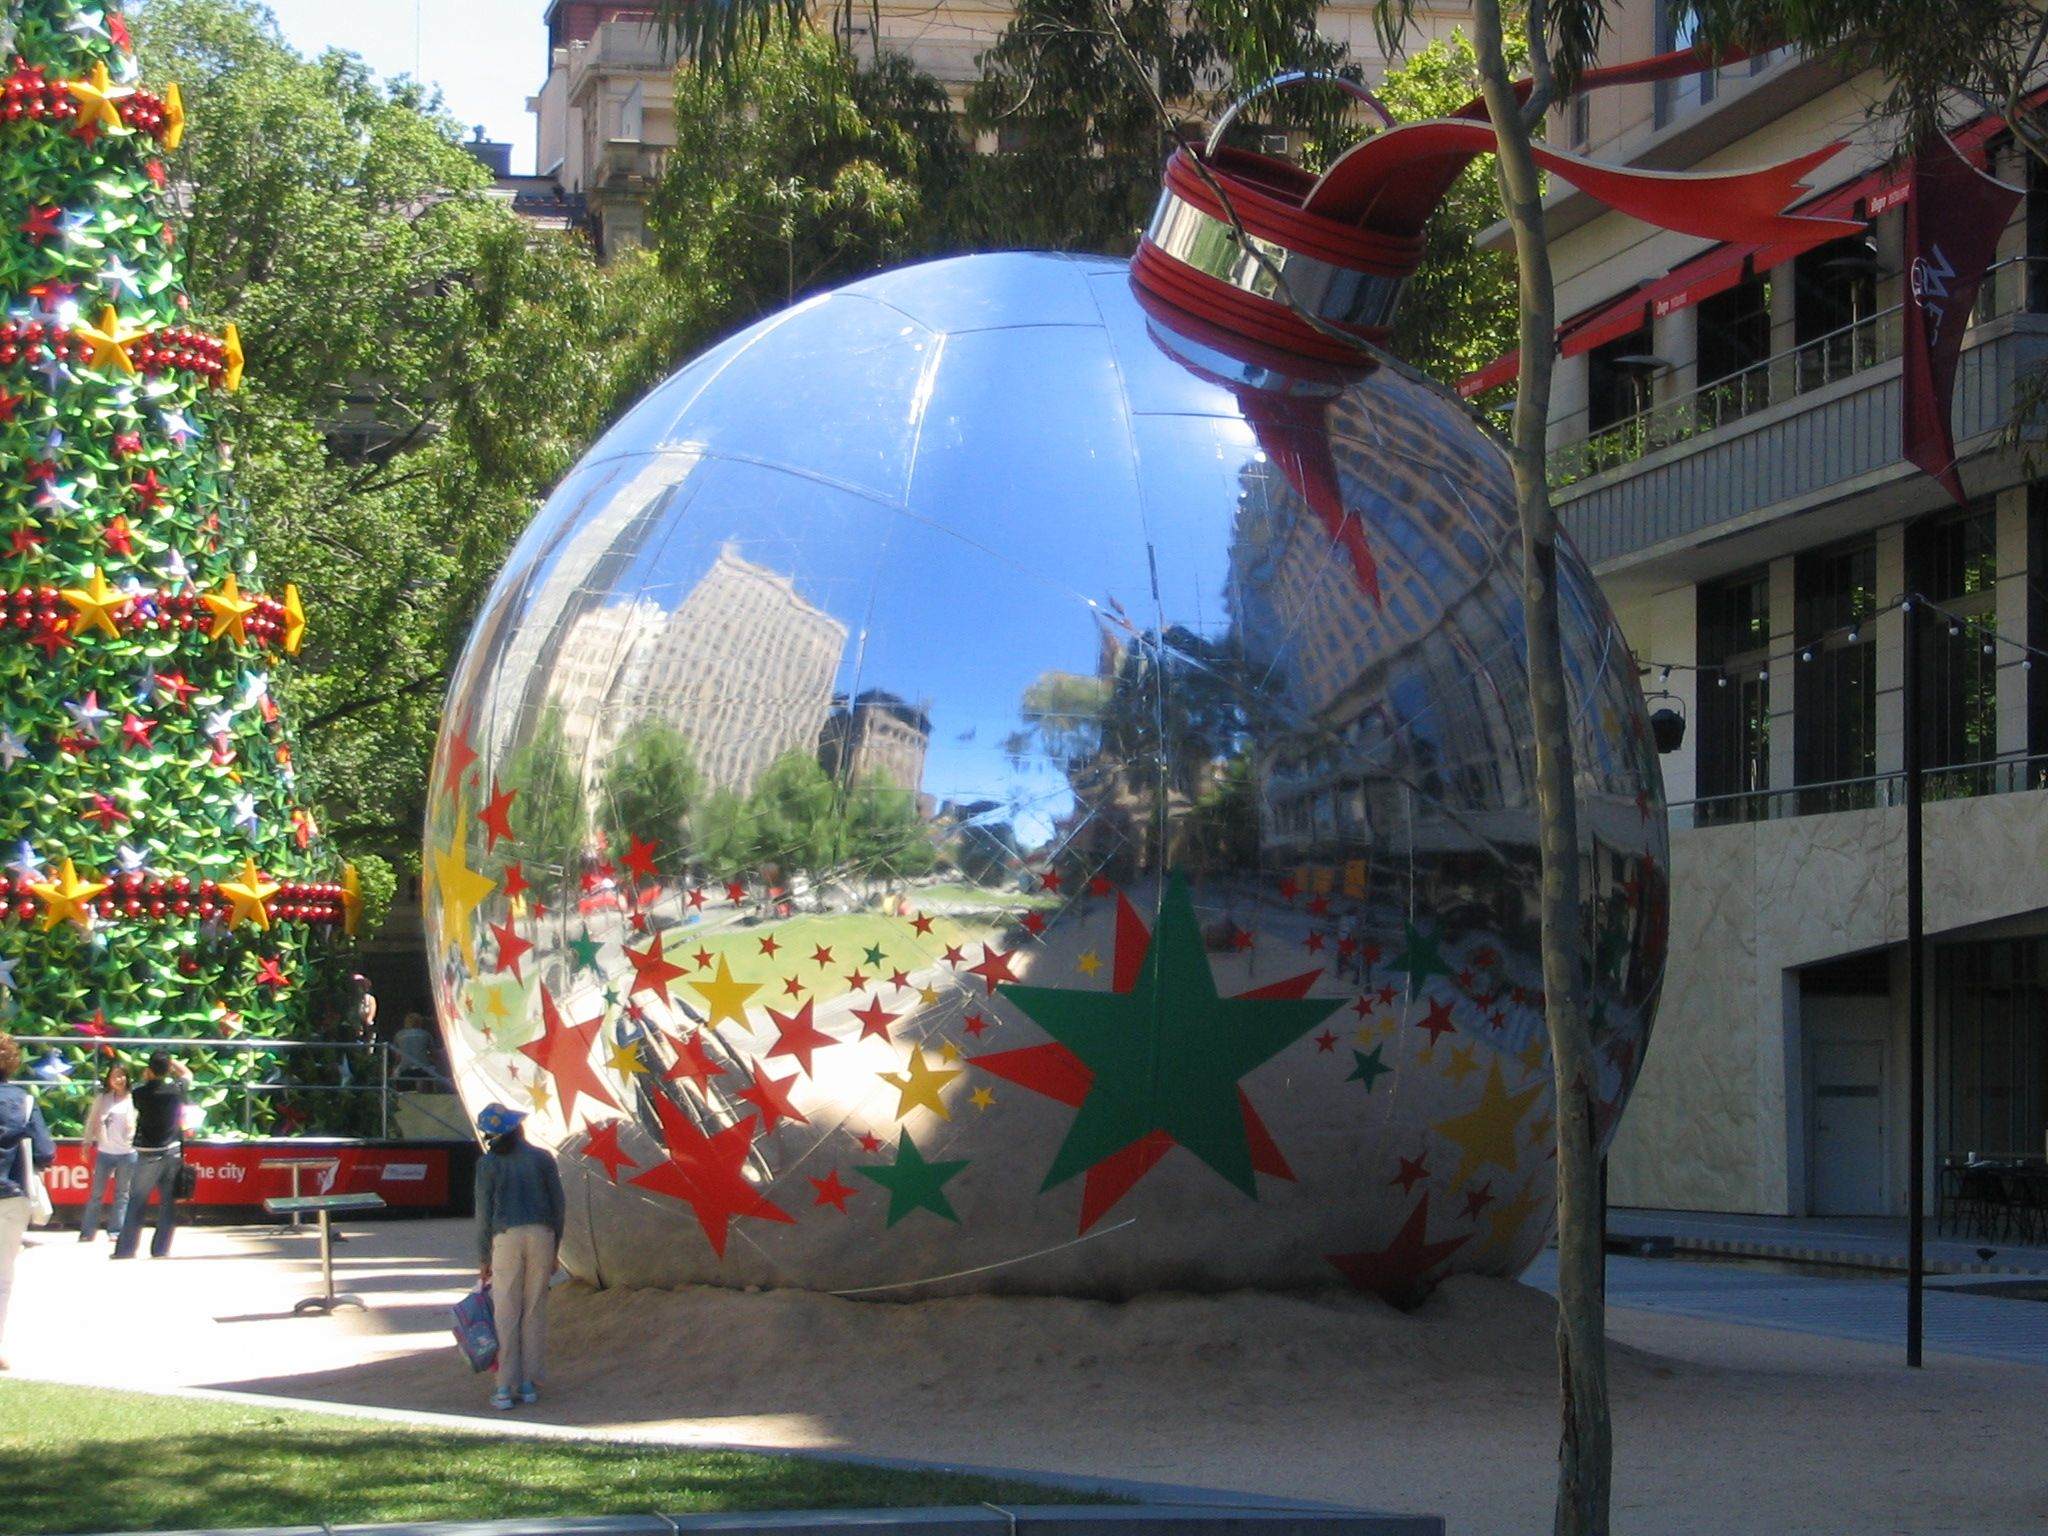 giant outdoor christmas ornaments balls - Google Search | HH ...